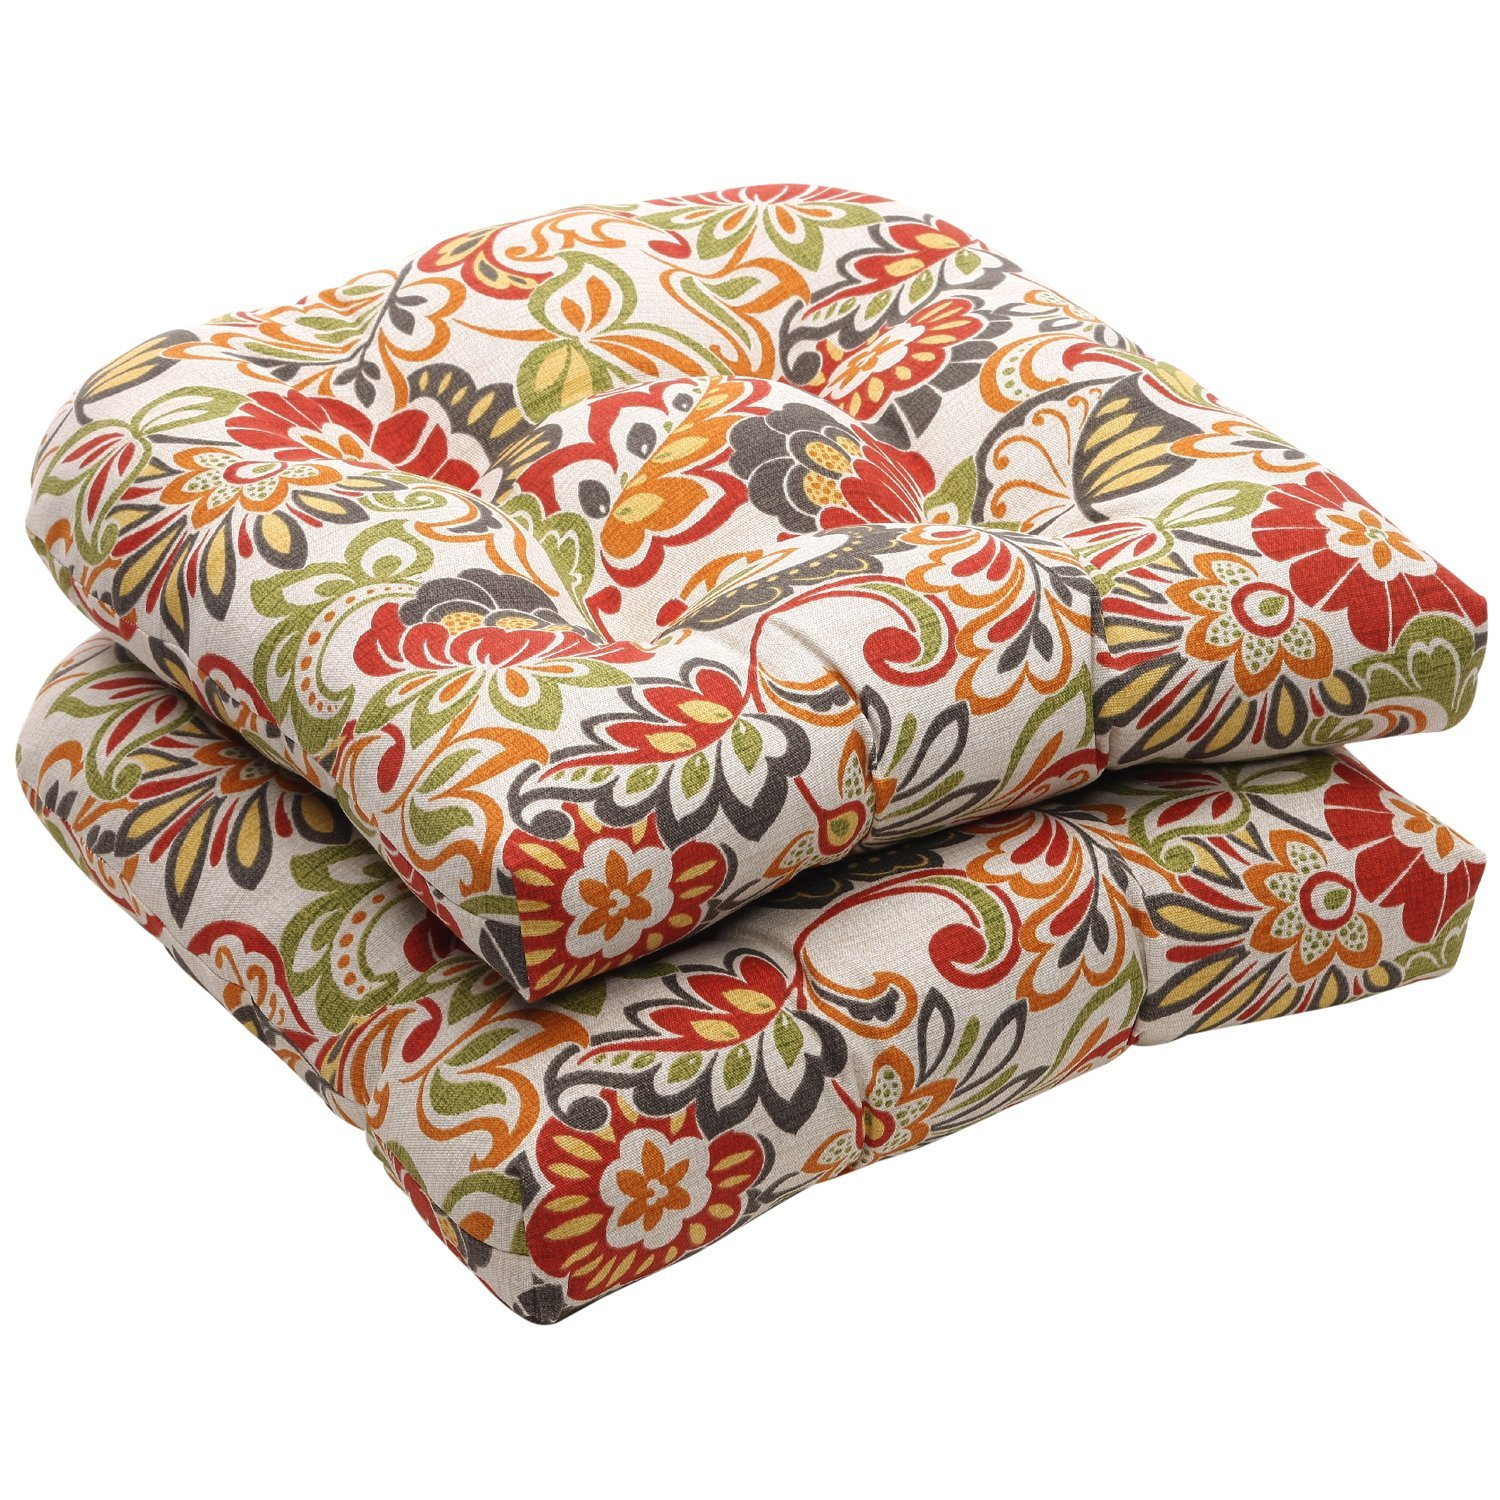 outdoor chair cushions amazon.com: pillow perfect indoor/outdoor multicolored modern floral wicker seat  cushions, 2-pack: home u0026 kitchen PUQANDH